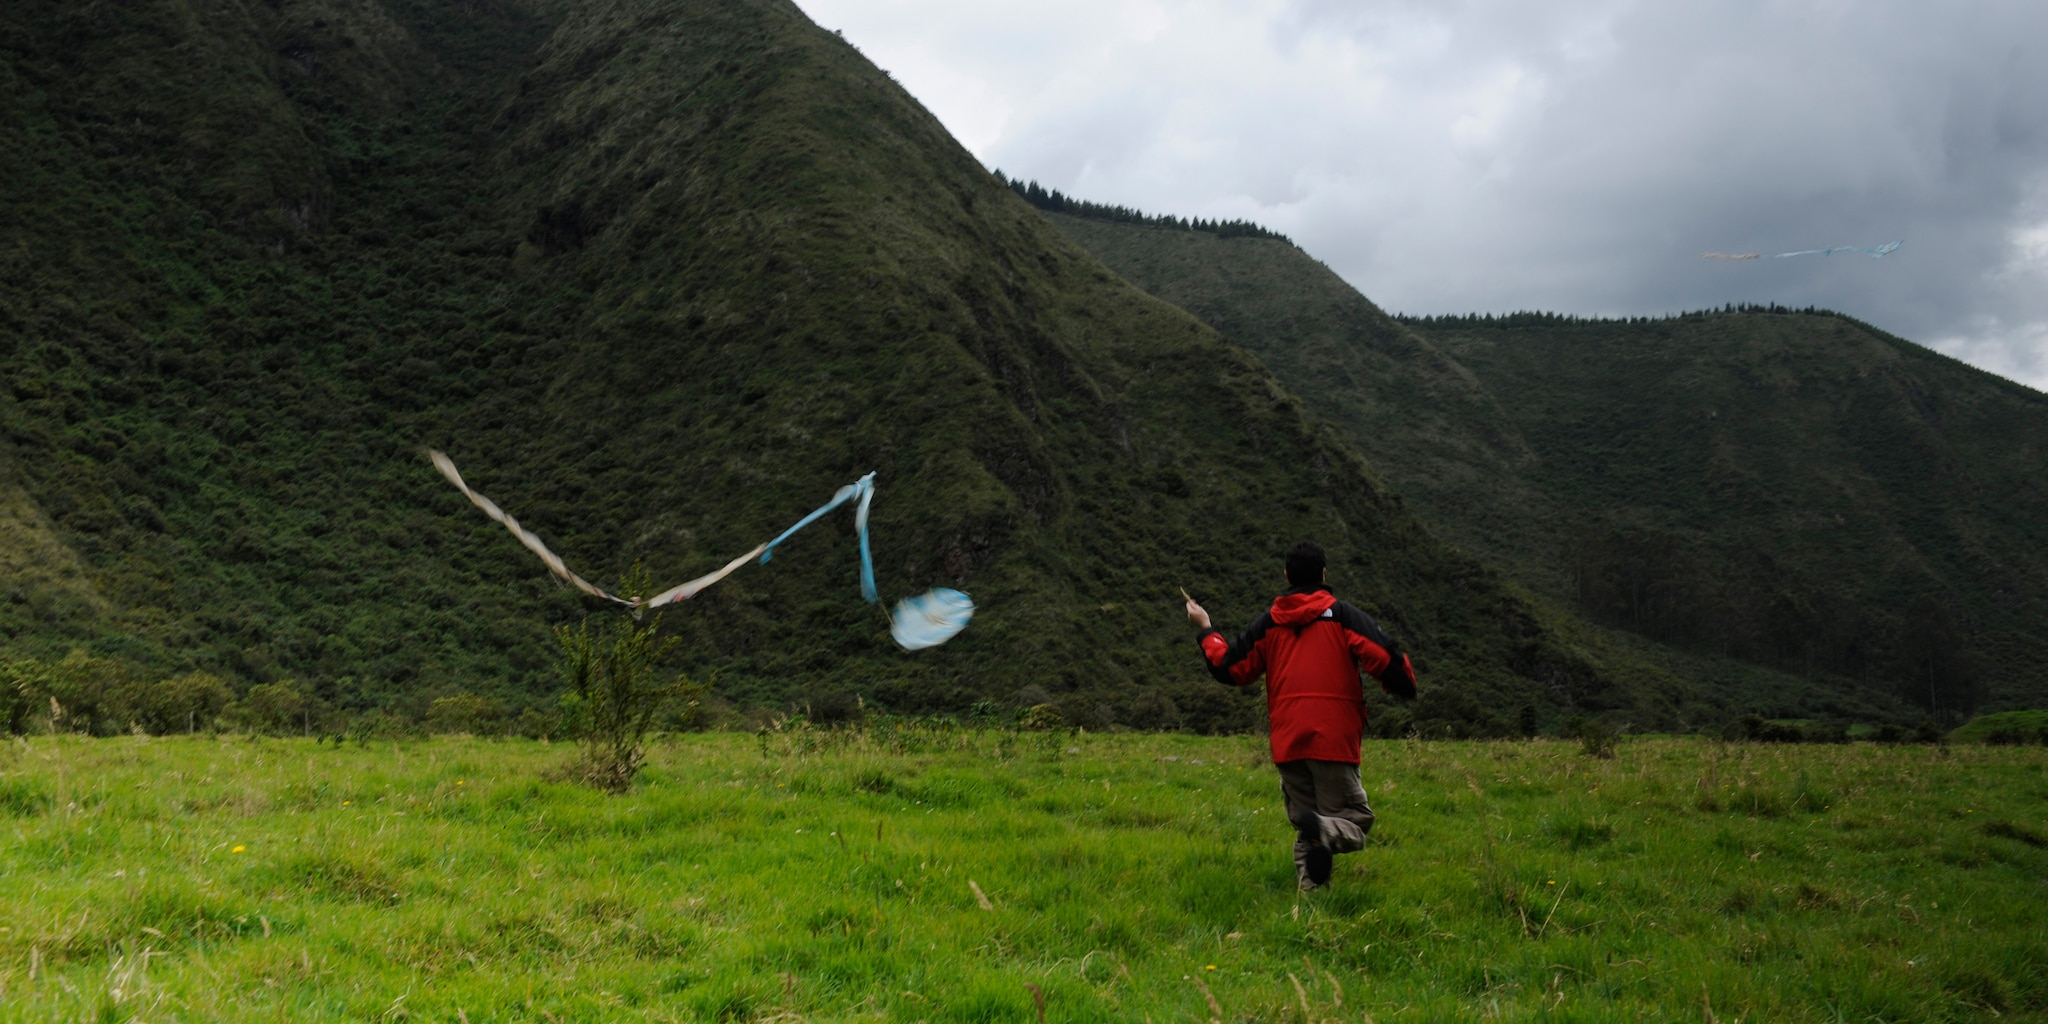 A boy flies his kite on a grassy plain at the foot of a hillside